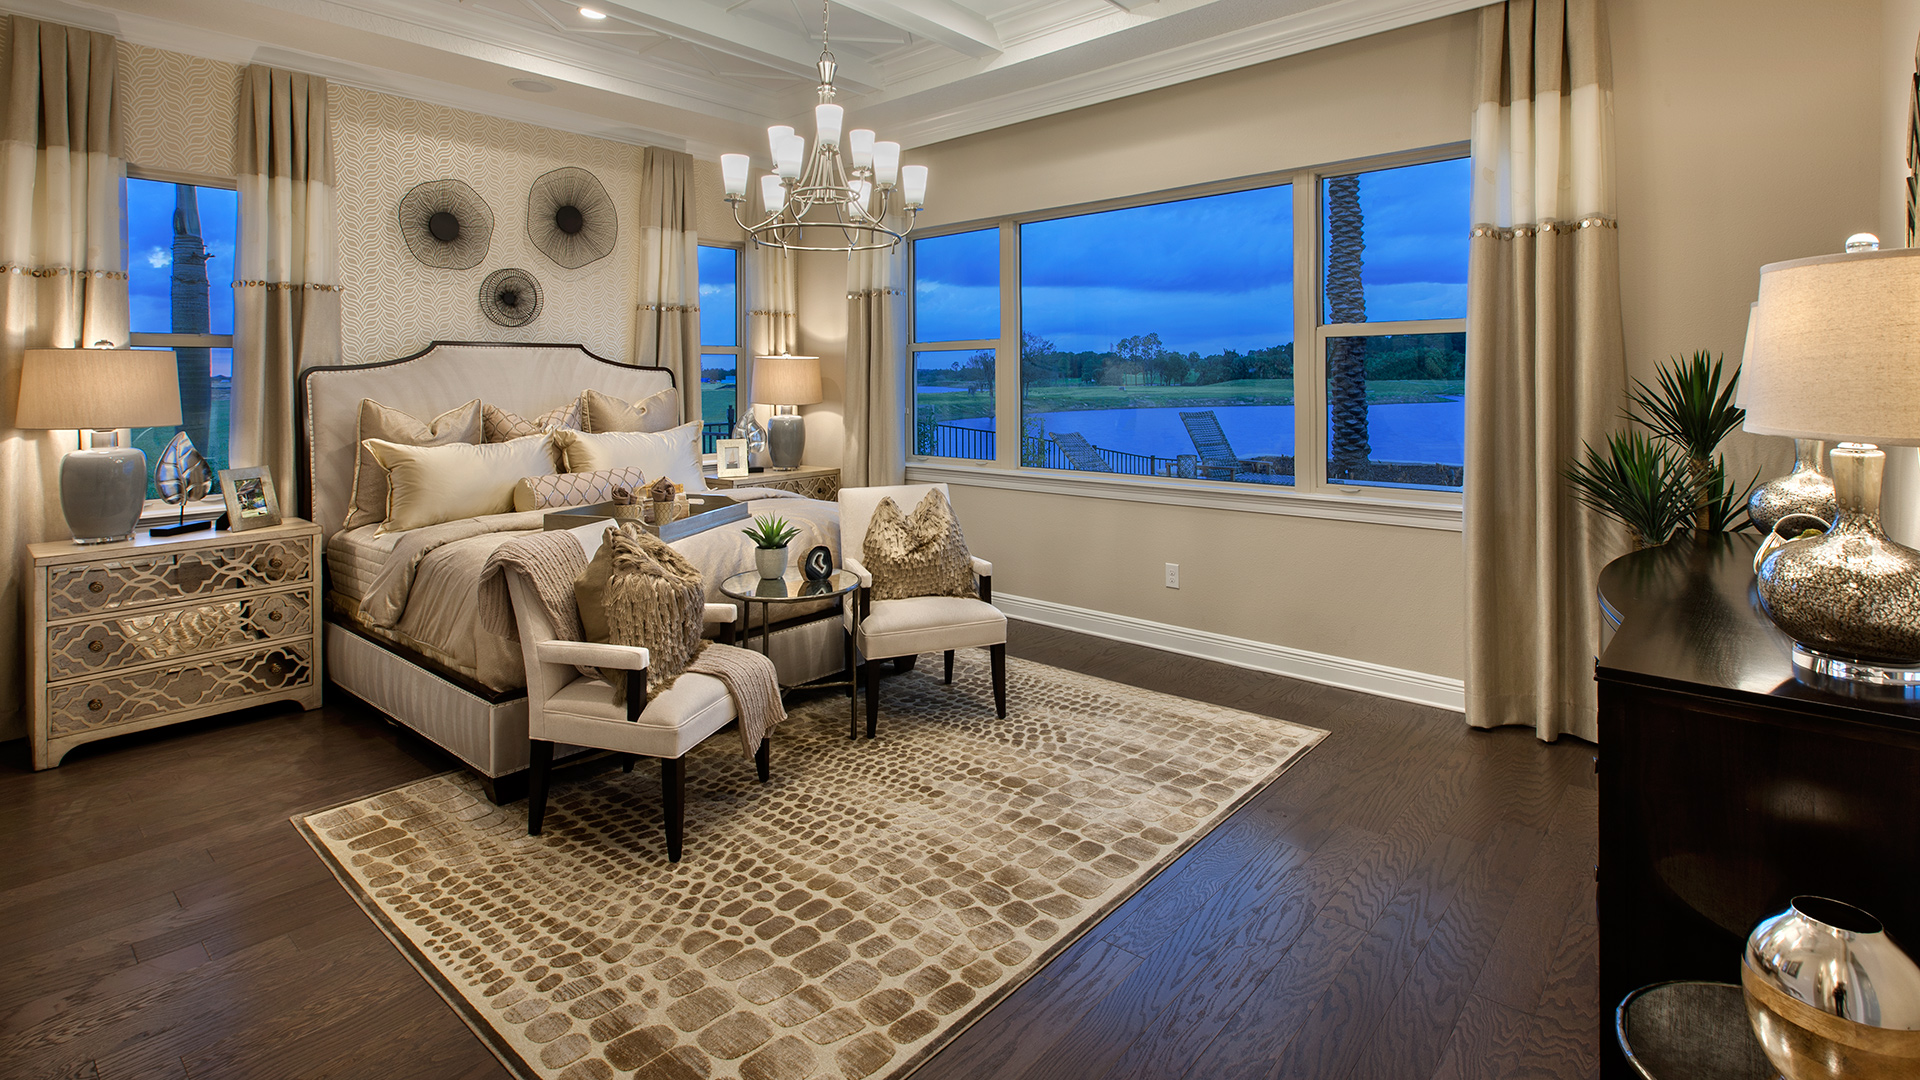 32 Stunning Luxury Master Bedroom Designs Photo Collection: Winter Garden FL New Homes For Sale